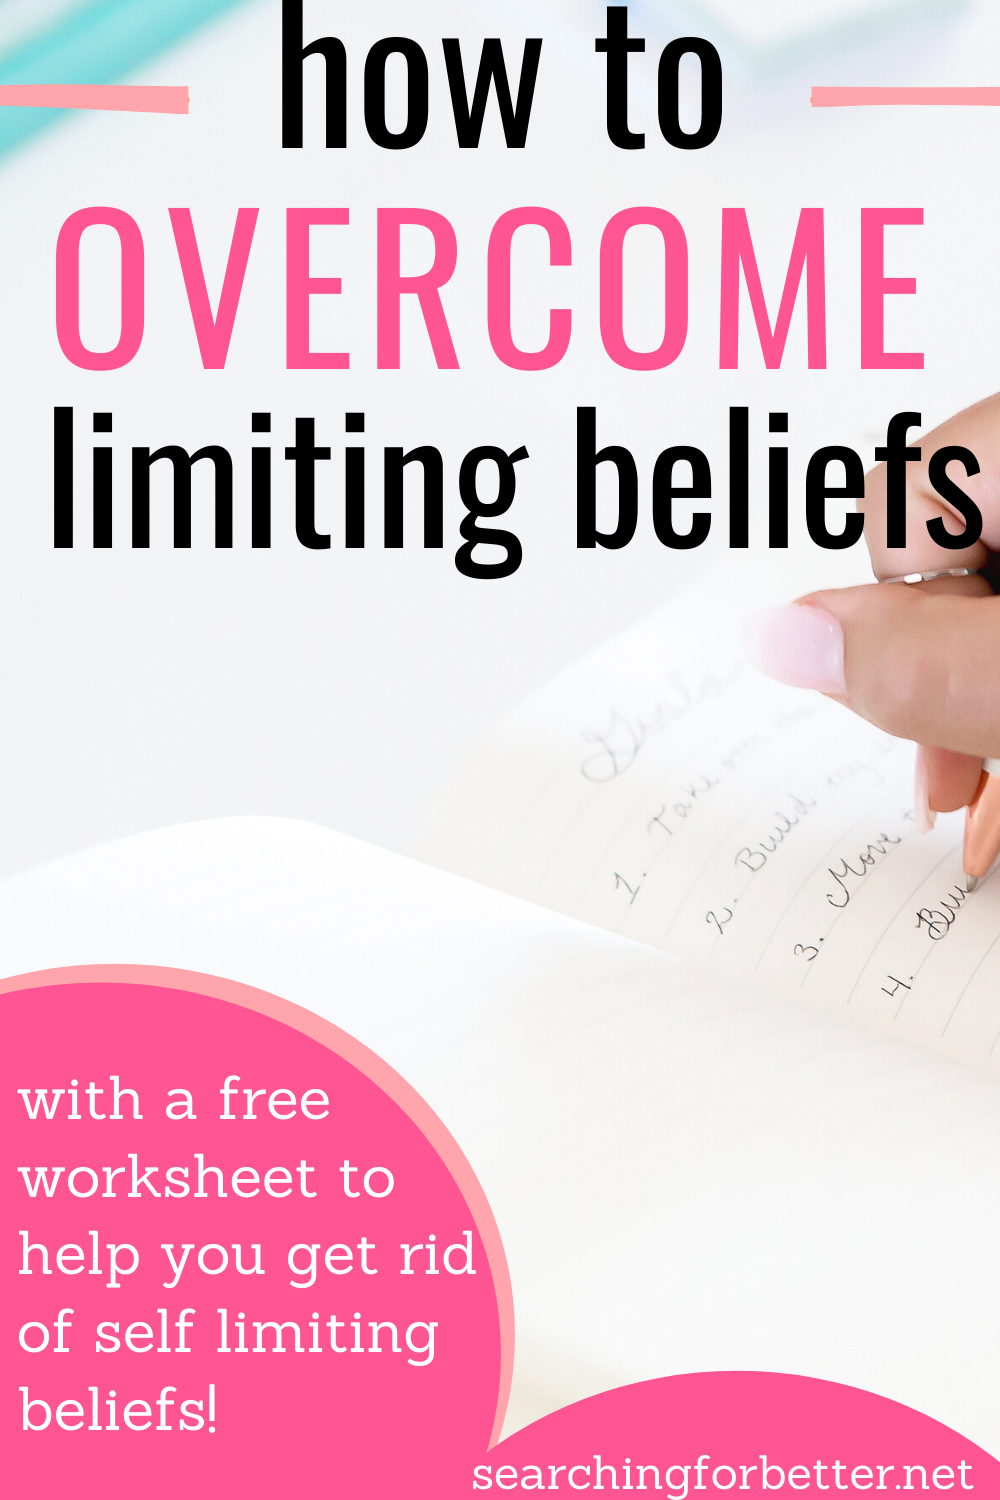 How To Overcome Limiting Beliefs. Self limiting beliefs are really common and can stop us living our best life and even getting the type of money we want to earn! In this post I show you a simple exercise with a free worksheet on how to get rid of limiting beliefs.